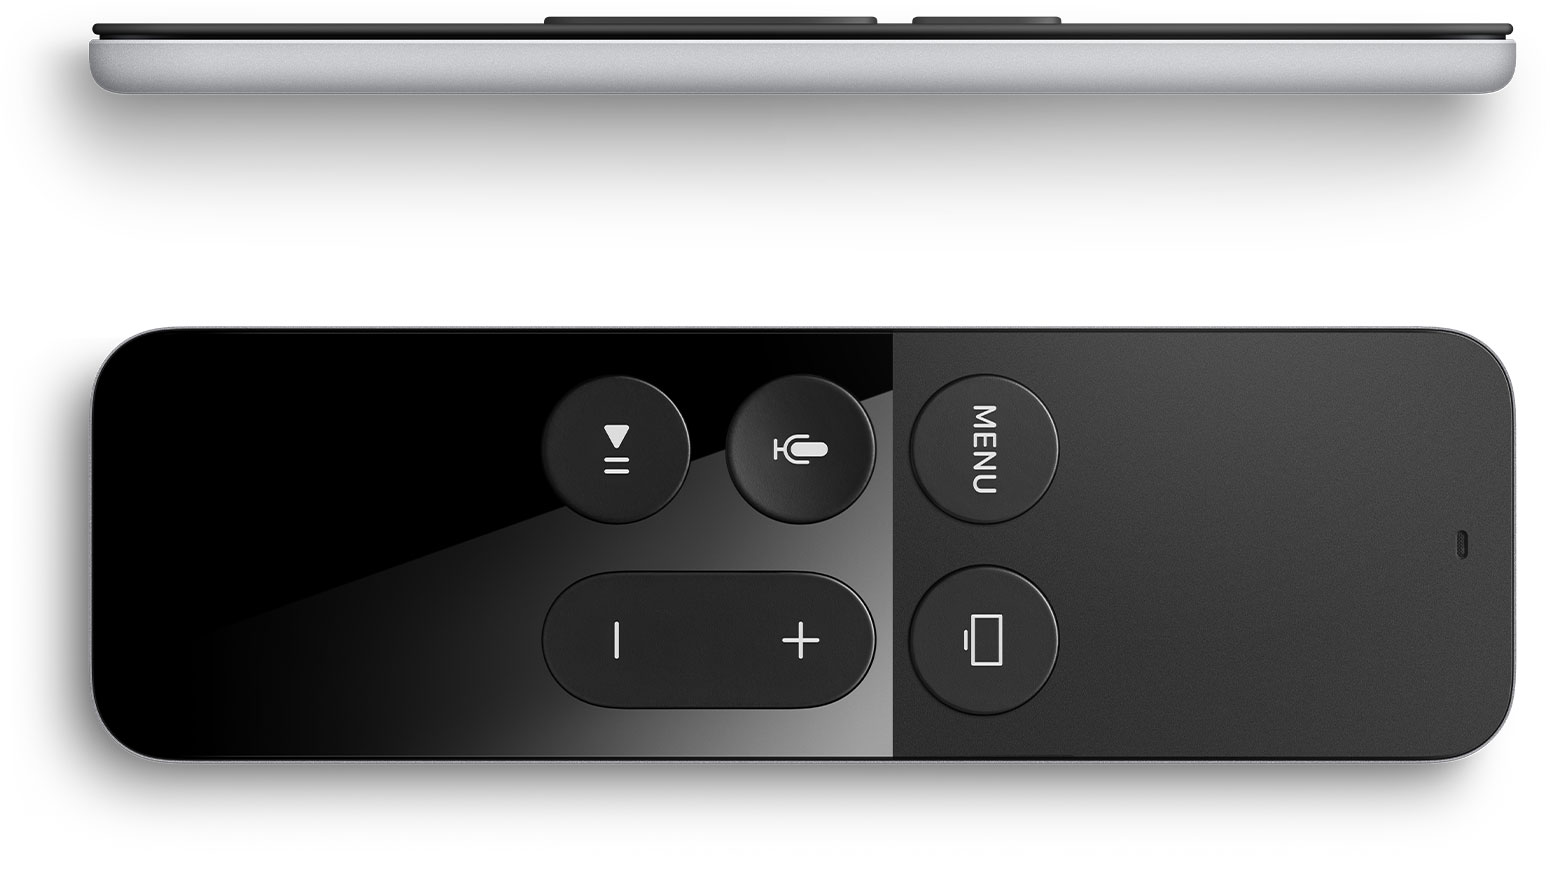 new_interface_remote_large_2x